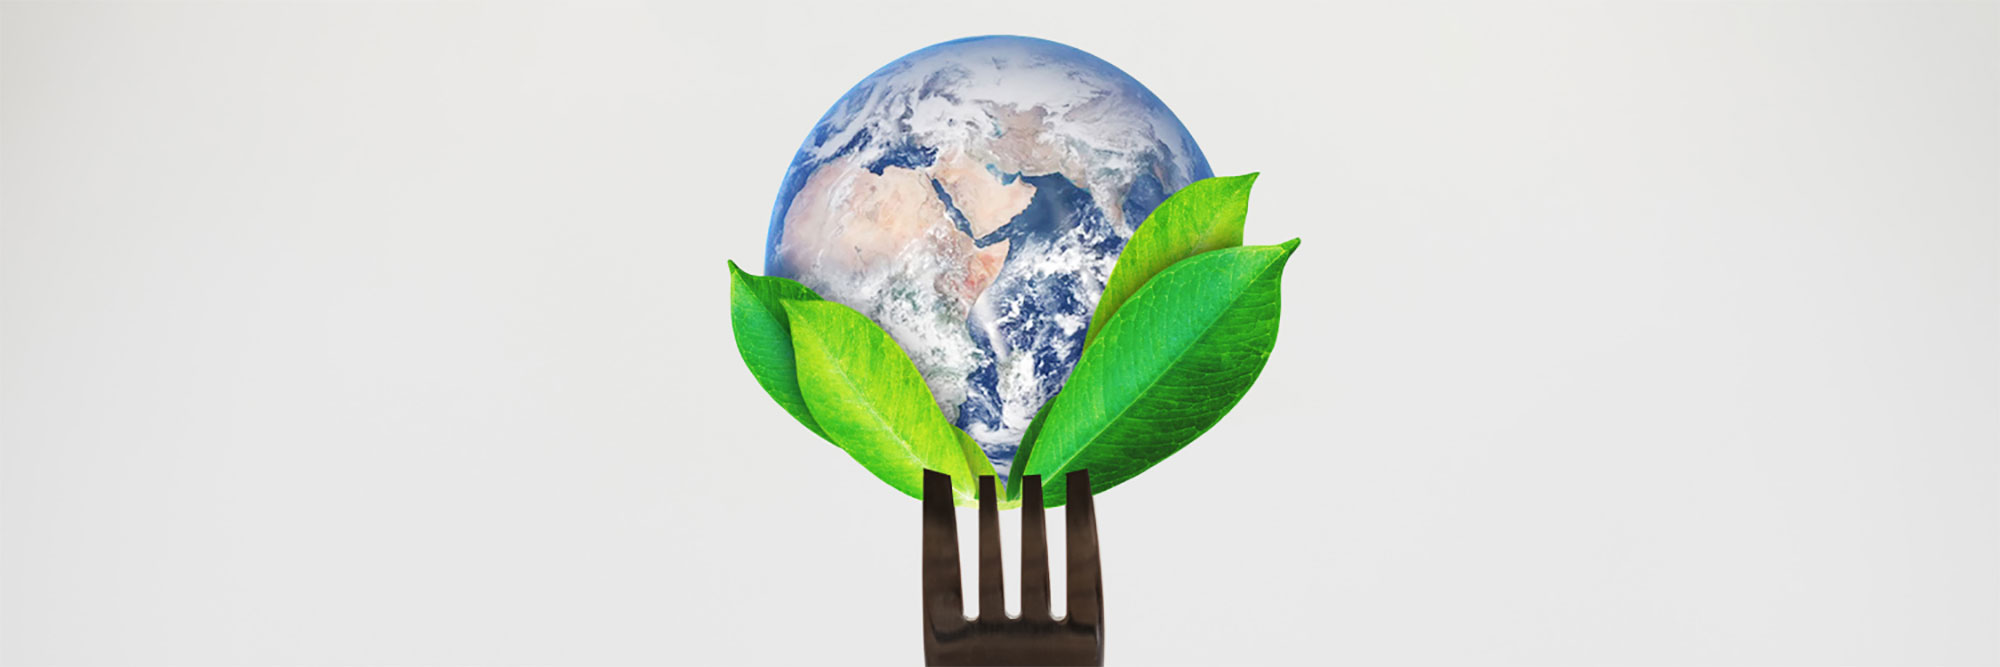 Globe on the tines of a fork with some green leaves Earth Day 2021